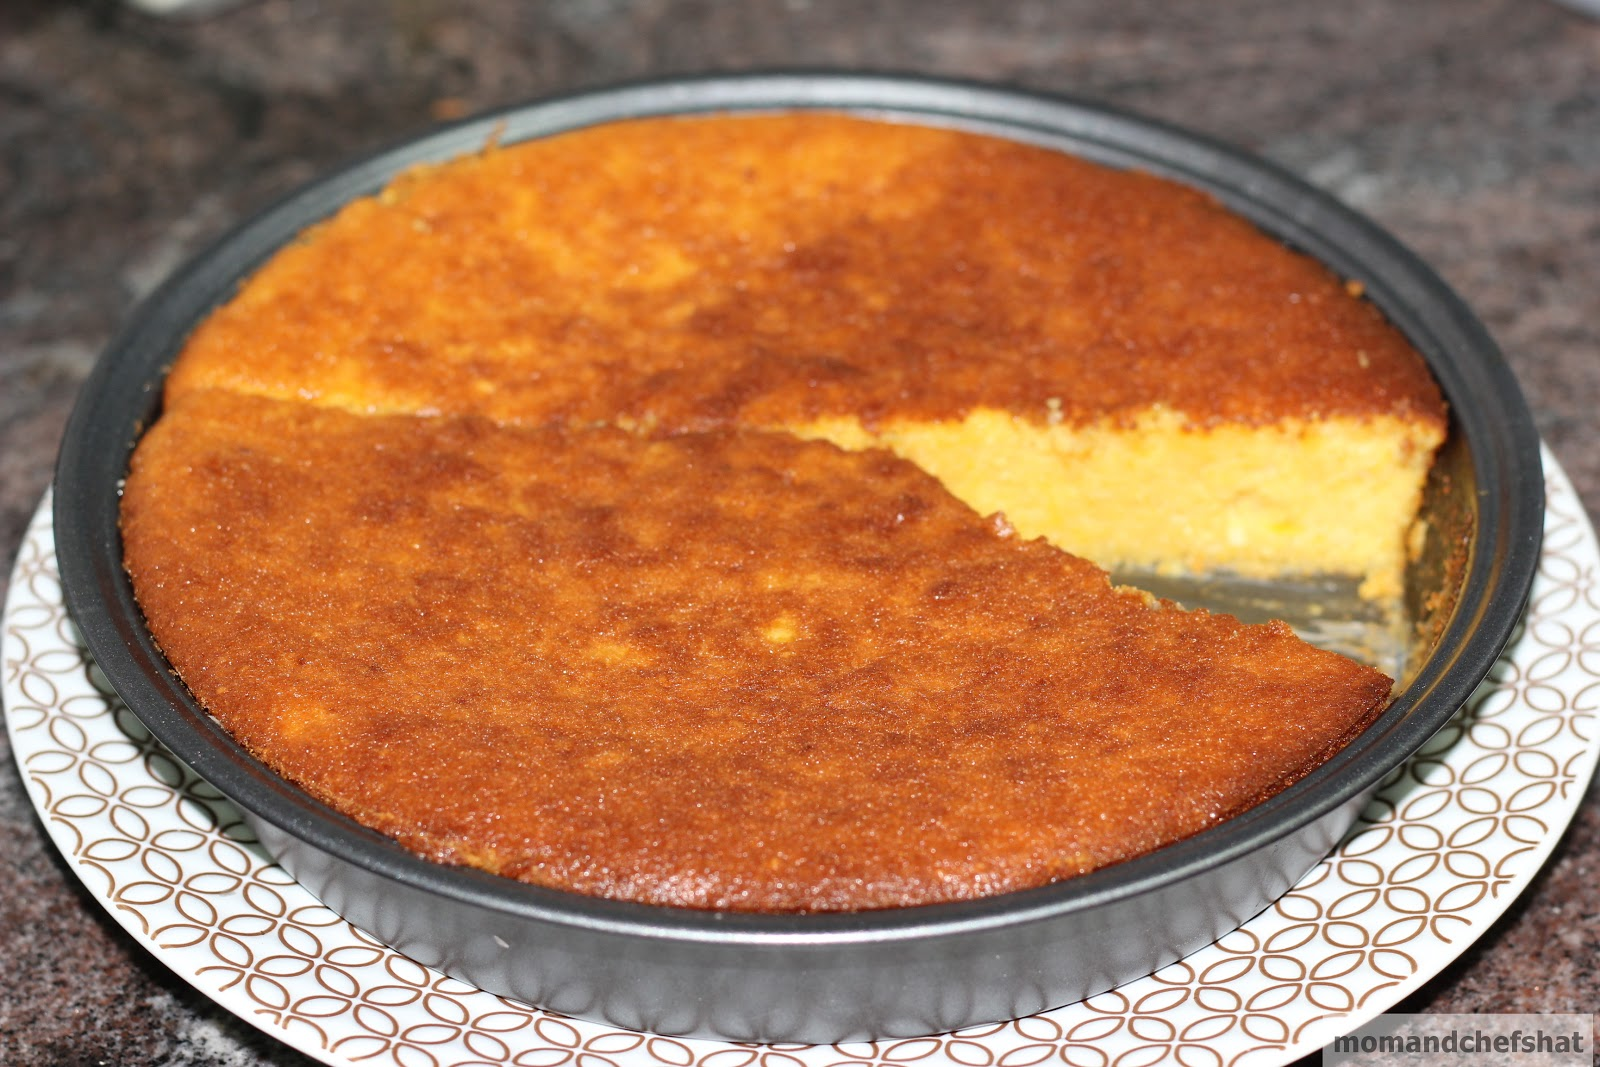 ... mommy's shoes: Nigella's Clementine Cake - Oh my darling, Clementine